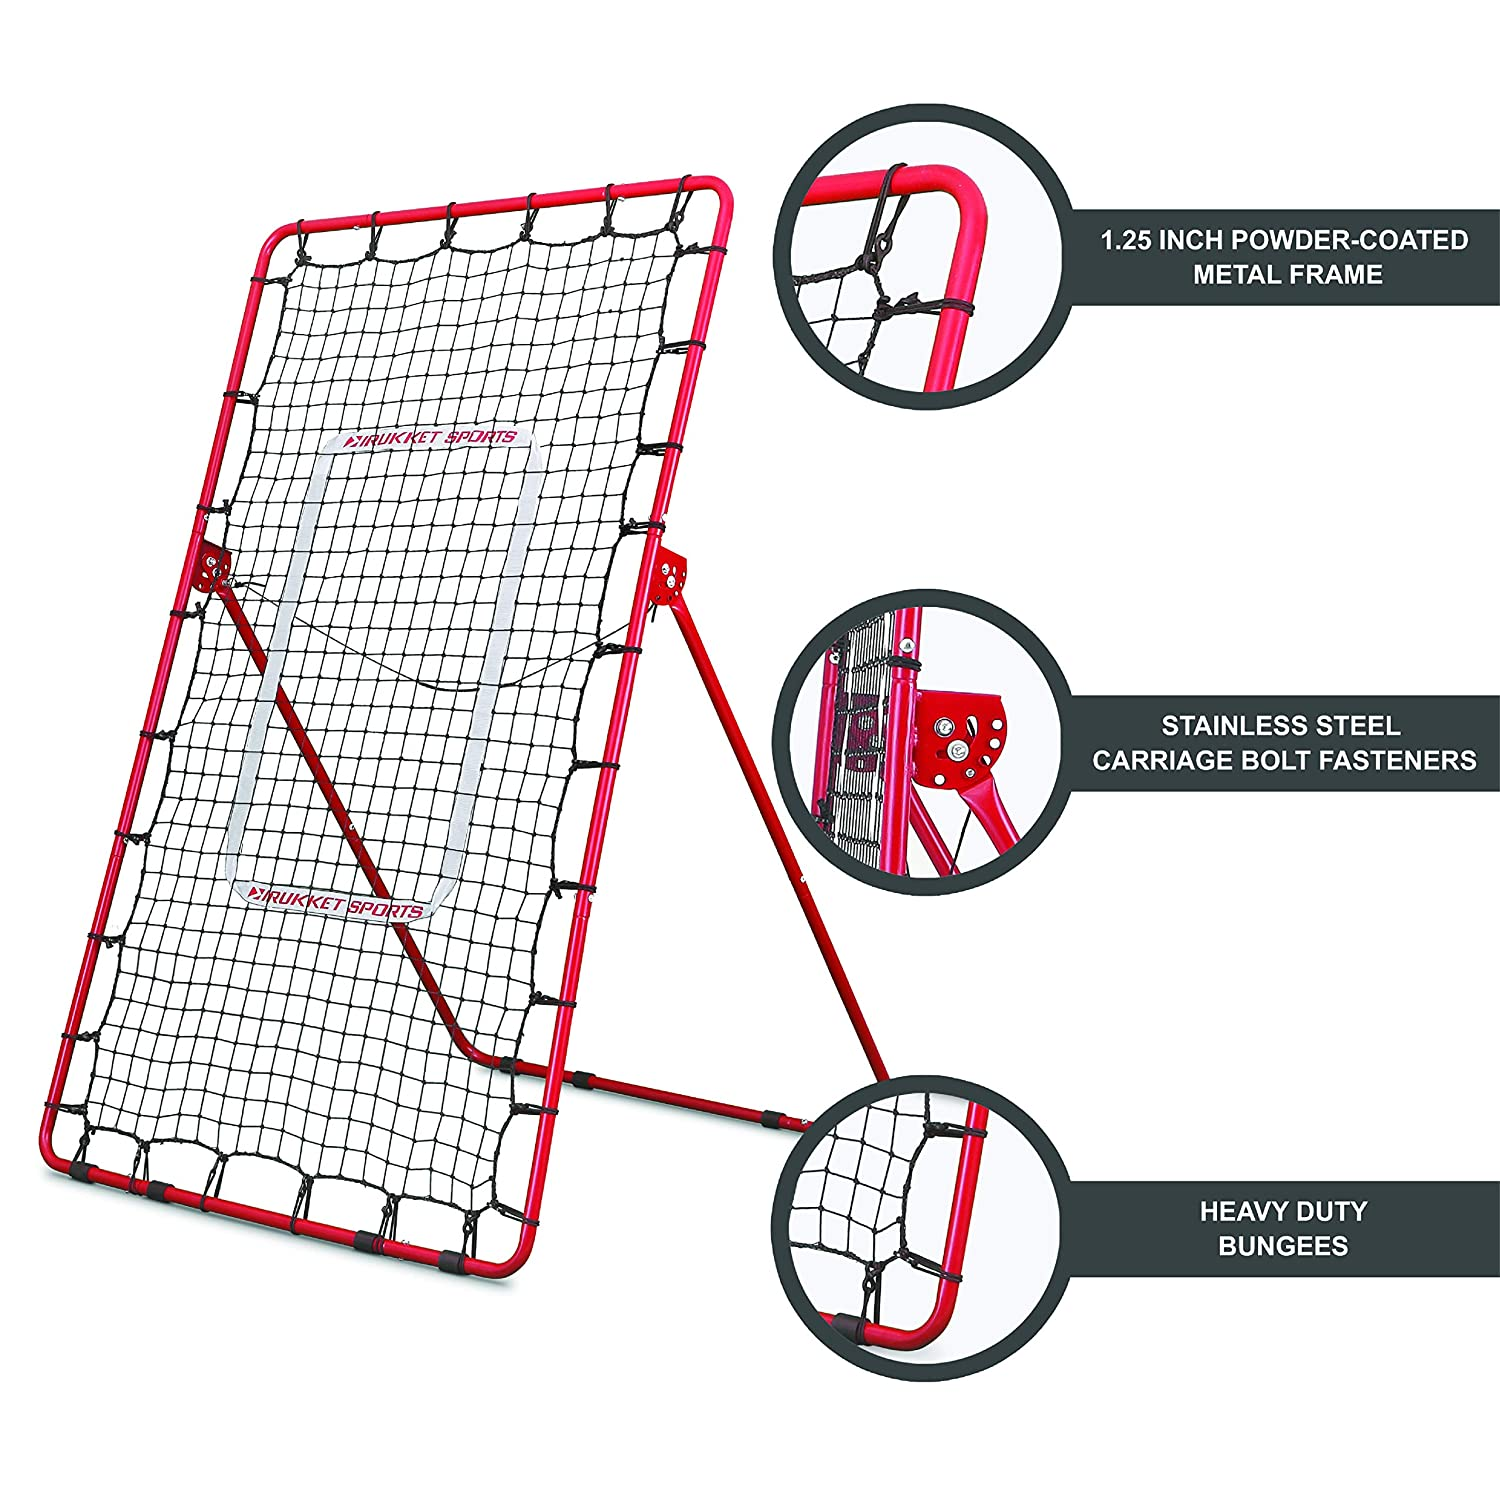 Rukket Pitch Back Baseball//Softball Rebounder Pitching and Throwing Practice Partner Adjustable Angle Pitchback Trainer